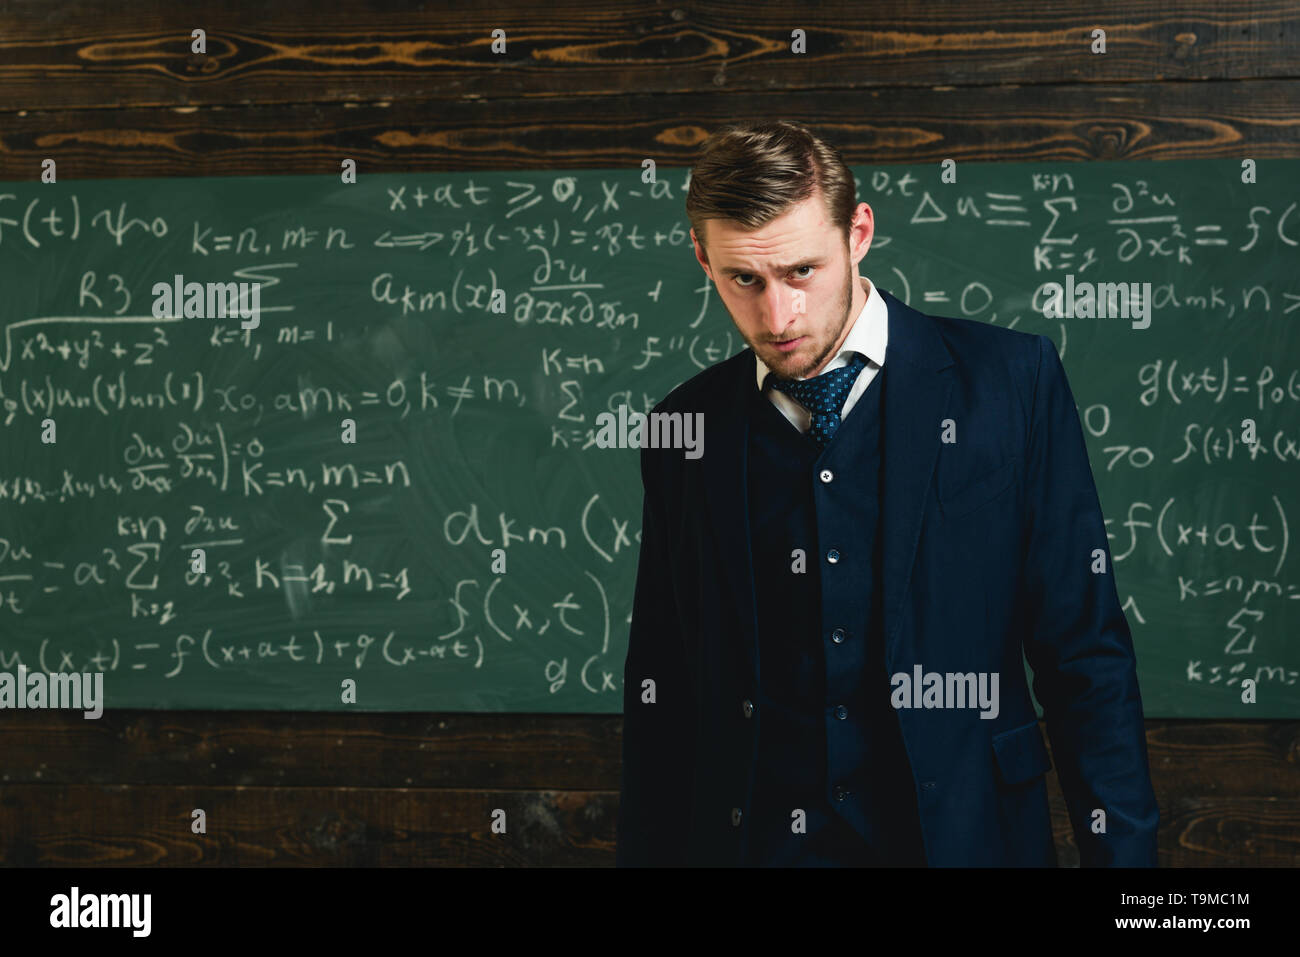 Talented mathematician. Genius solved mathematics problem.Teacher smart student intrested math physics exact sciences. Man formal wear classic suit - Stock Image